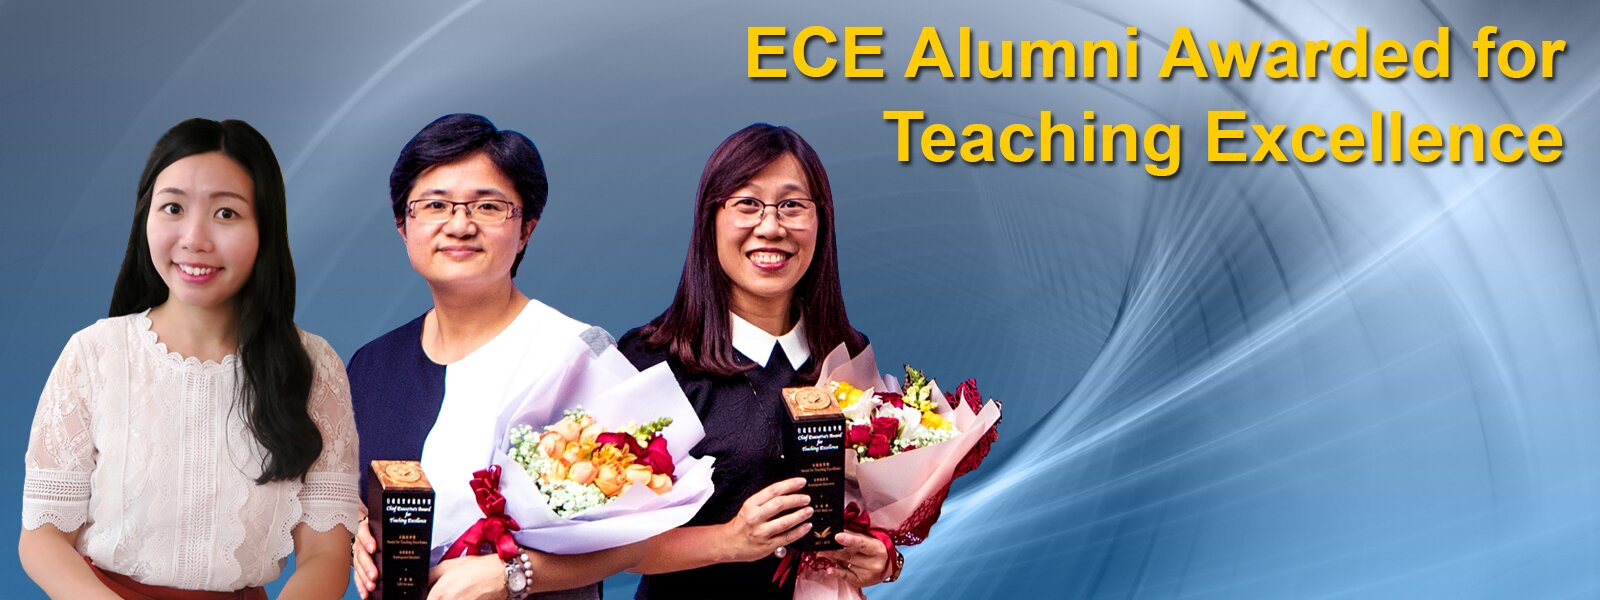 ECE Alumni Awarded for Teaching Excellence